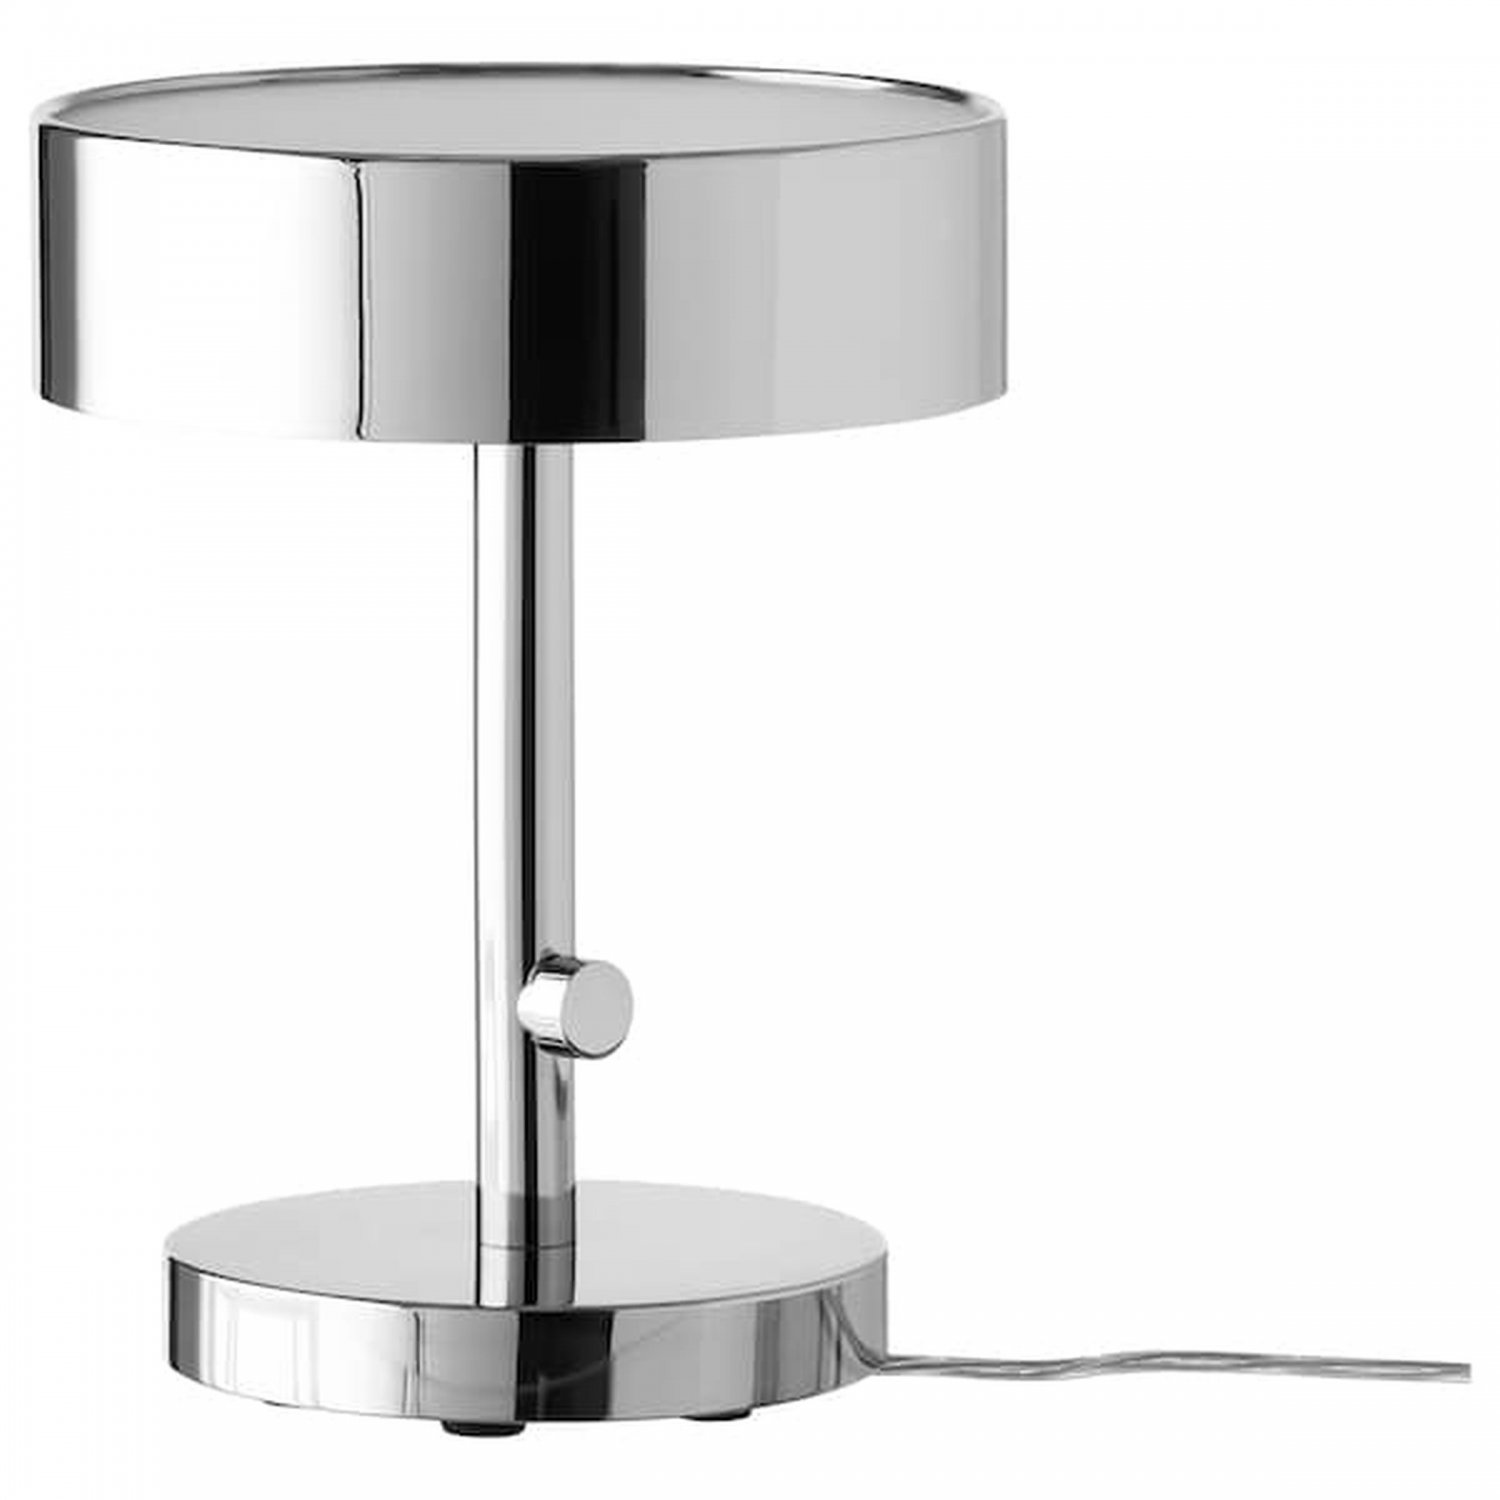 IKEA Stockholm 2017 Table Lamp CHROME Modern Architectural LIMITED EDITION